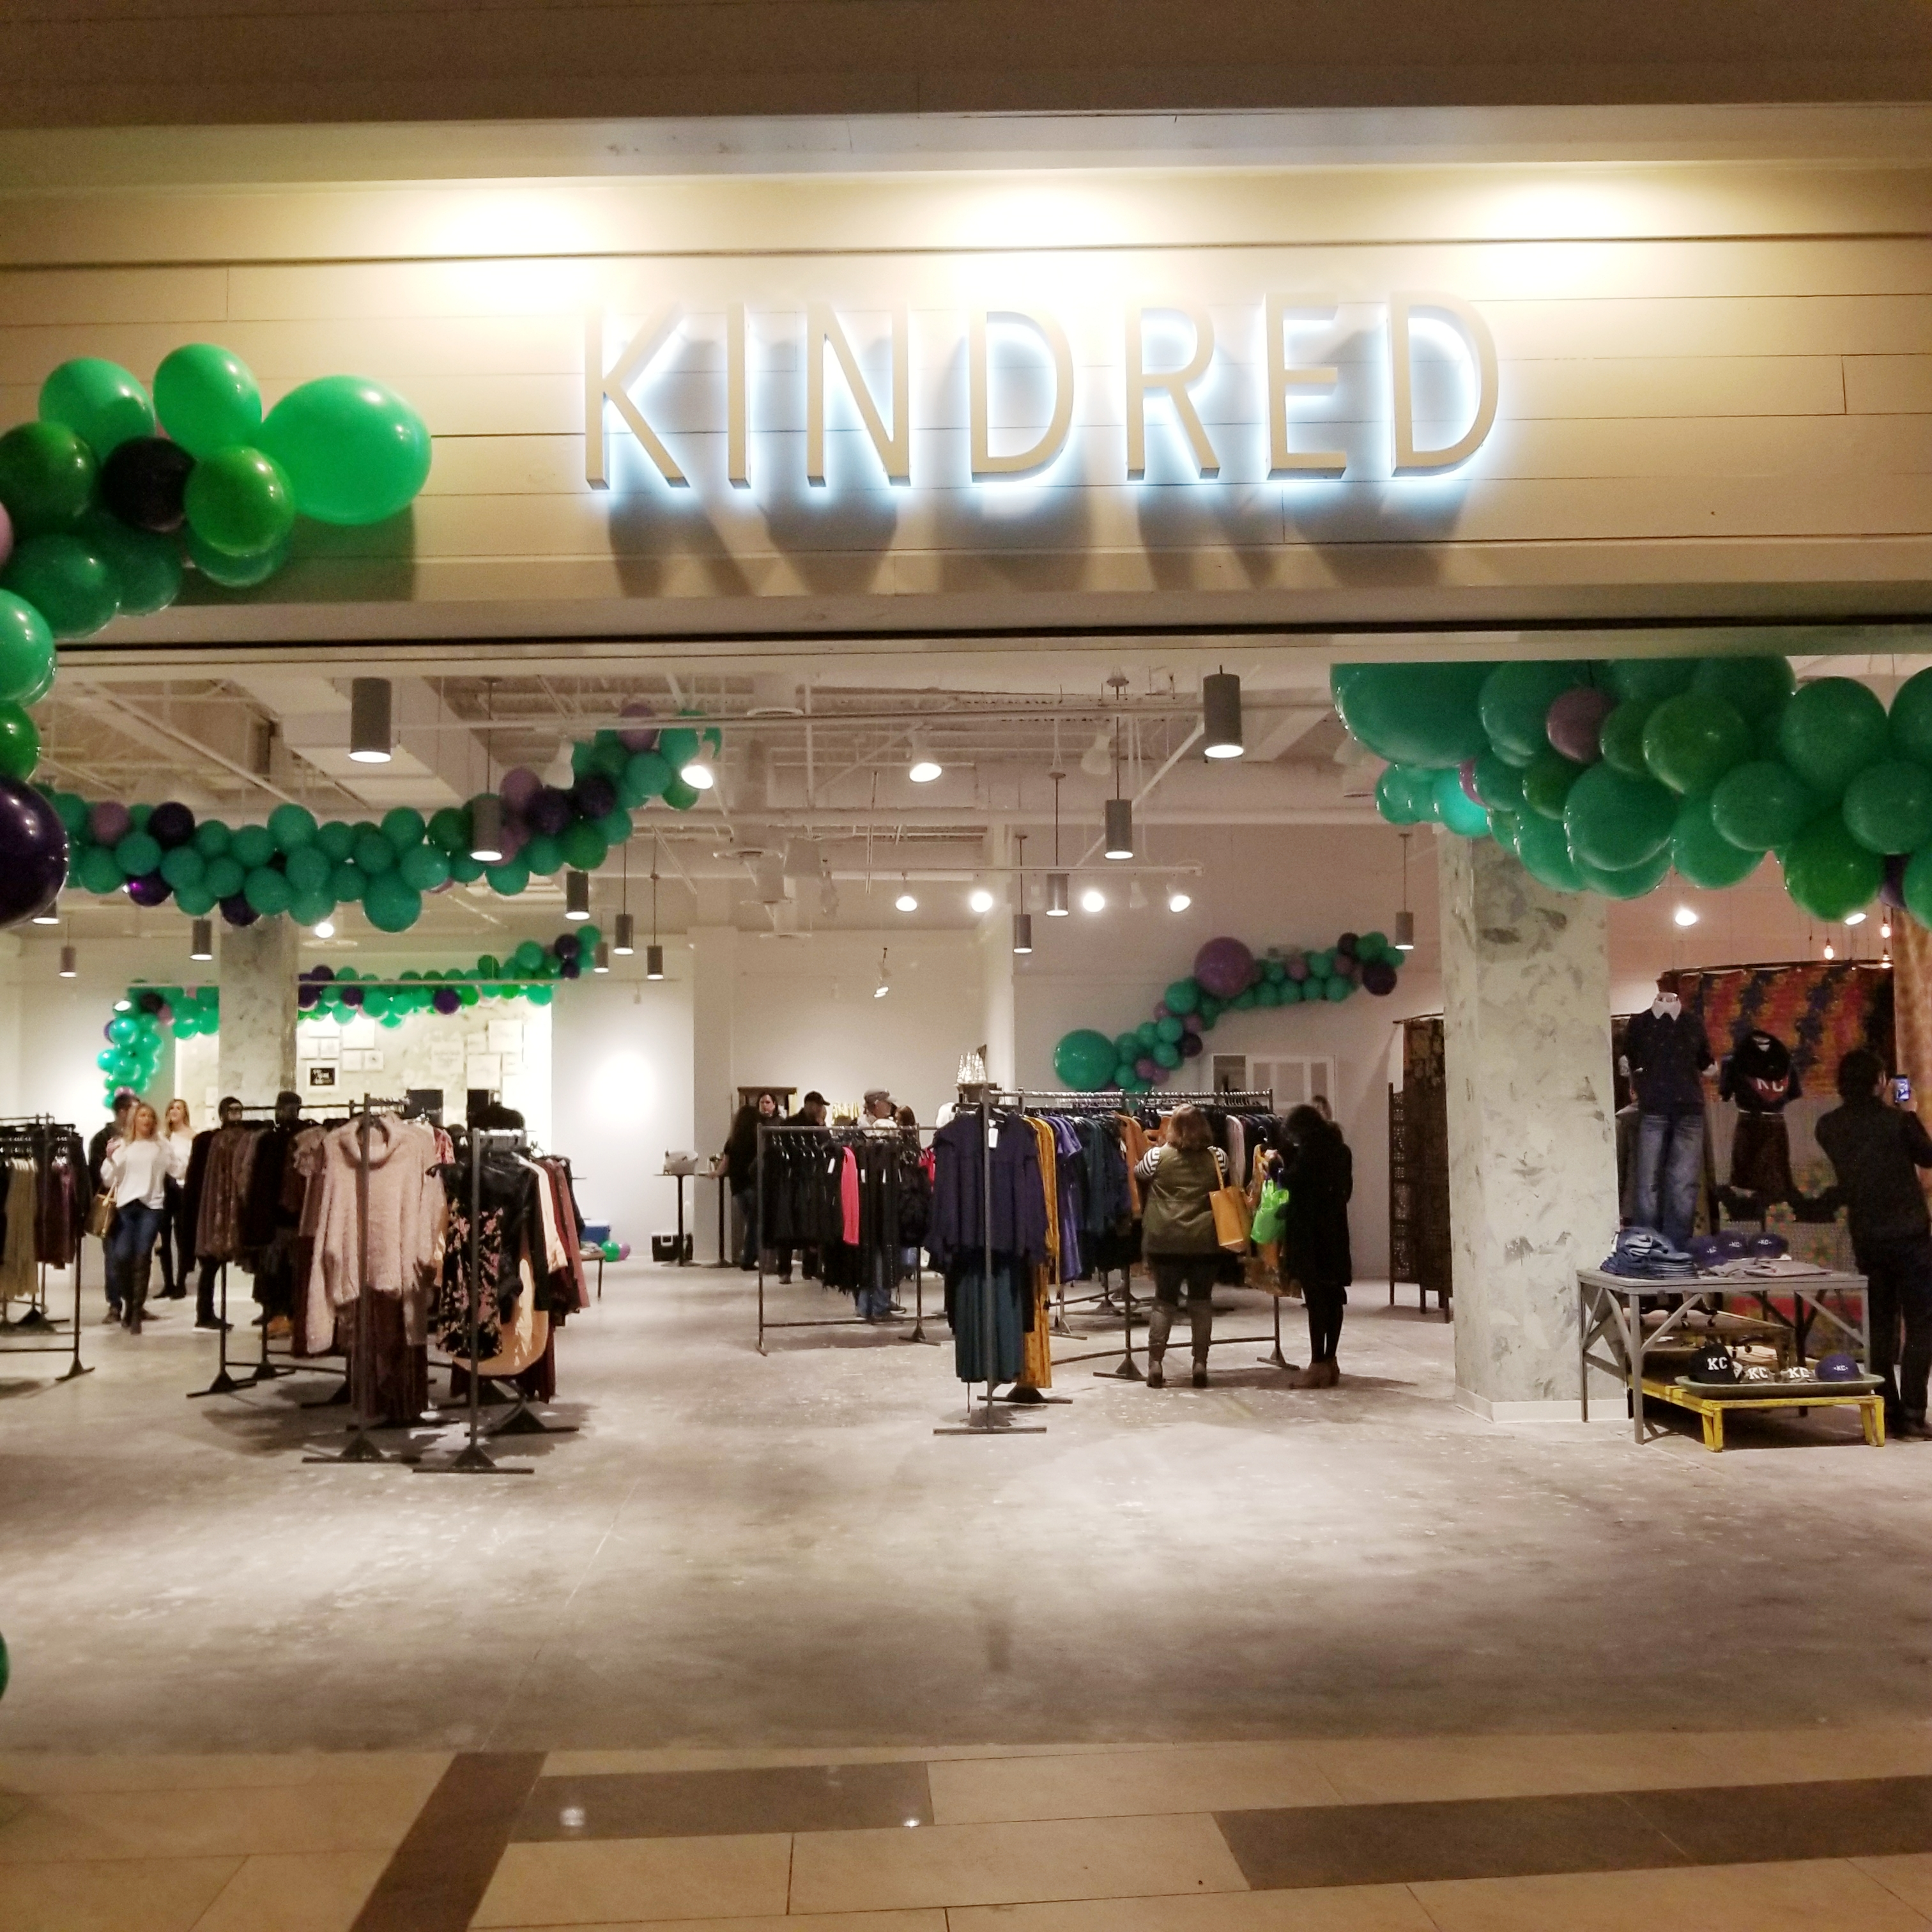 Kindred Shops in Kansas City. | Ashley from LSR